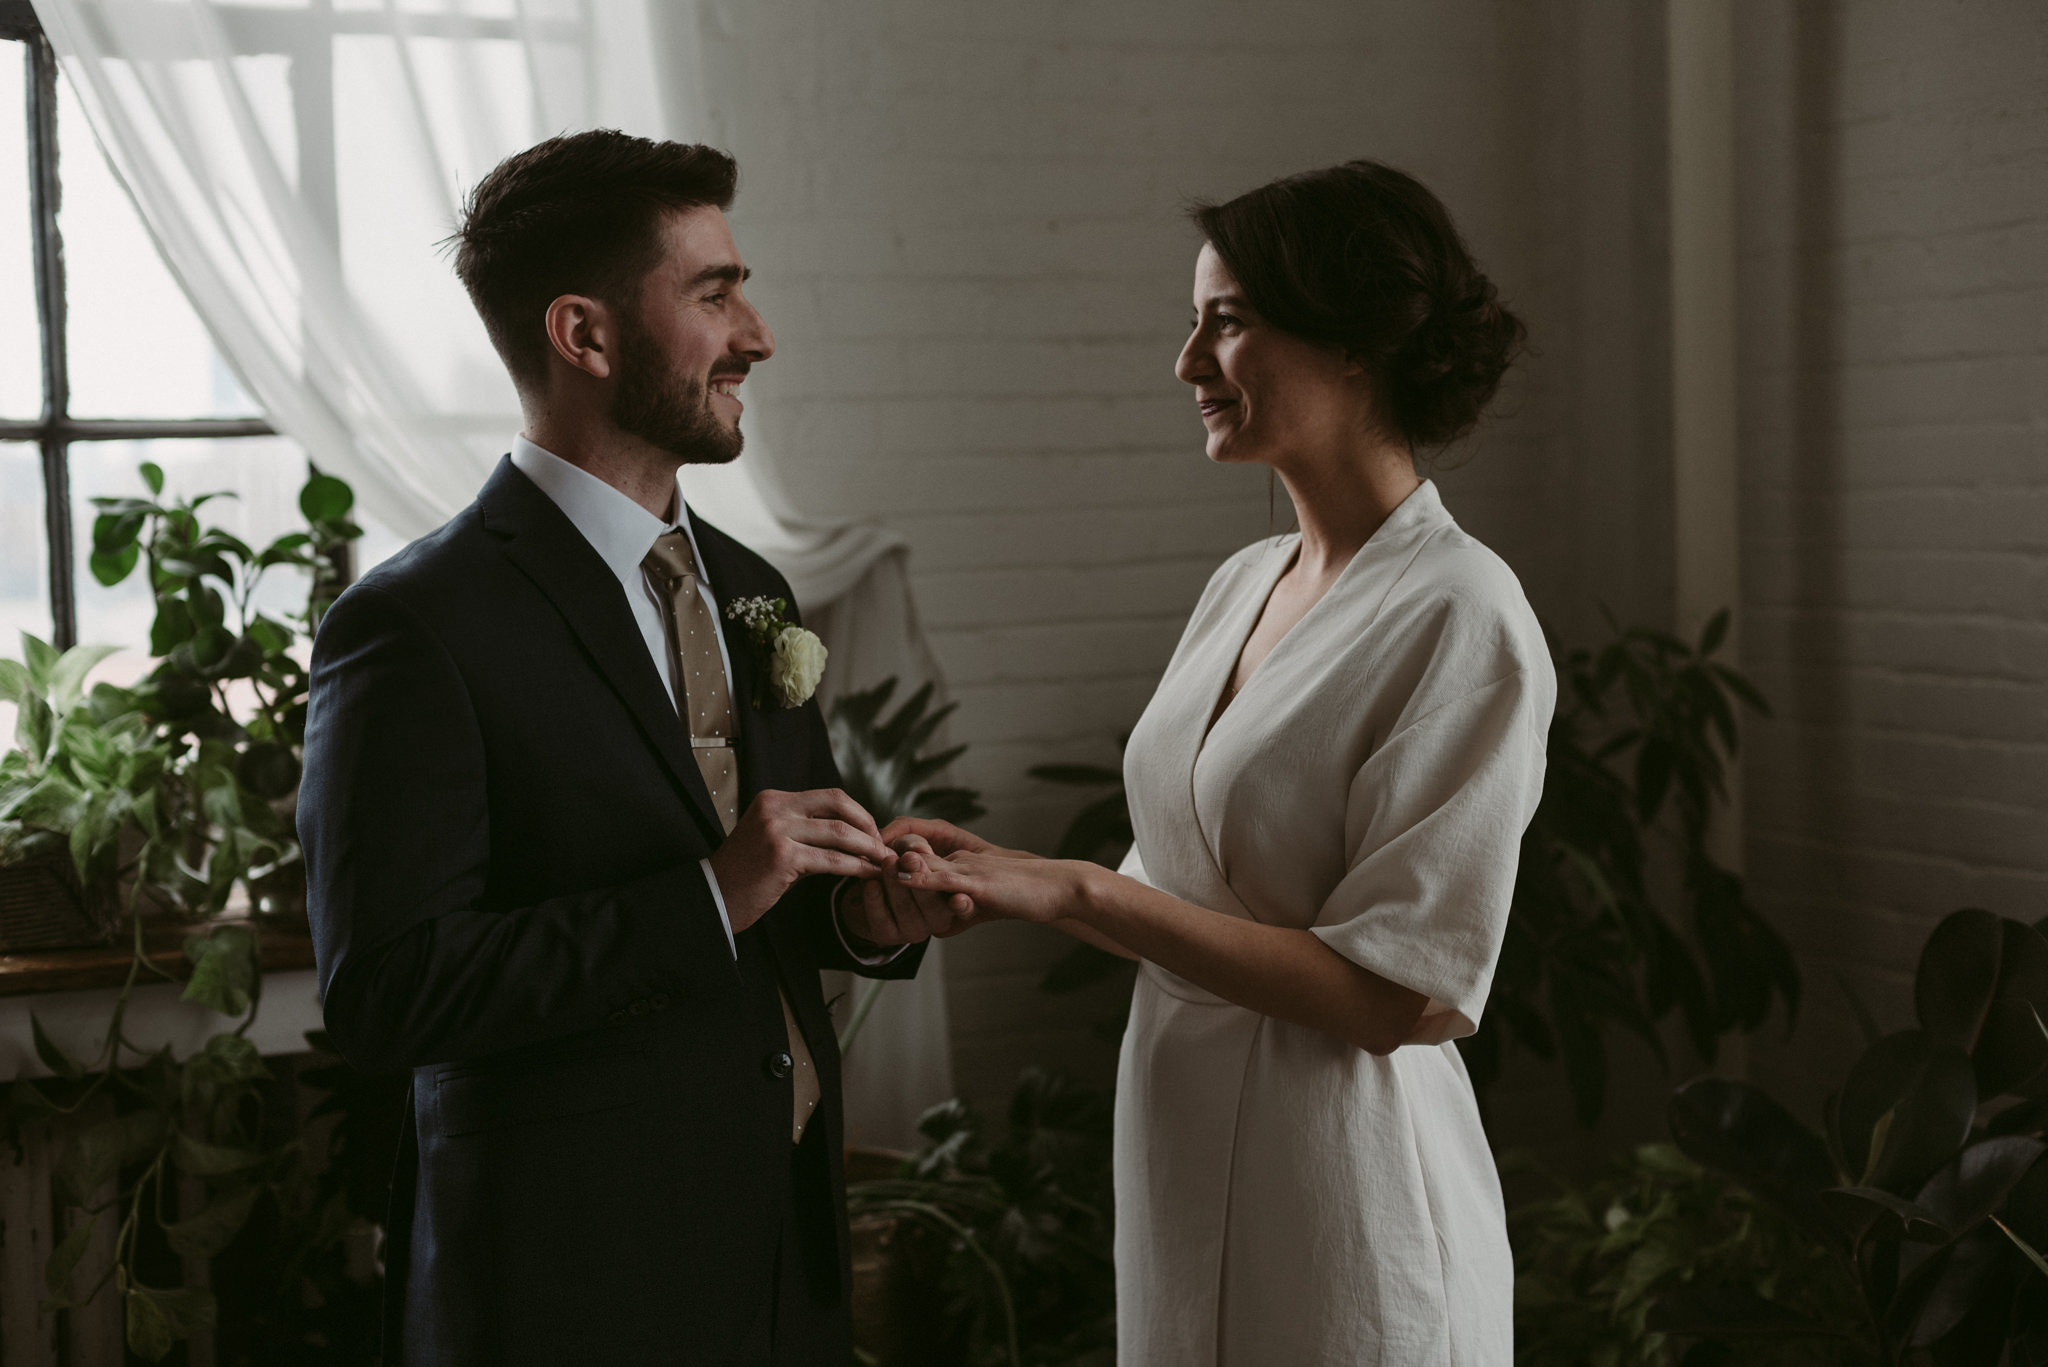 Bride and groom exchanging rings, Toronto loft elopement